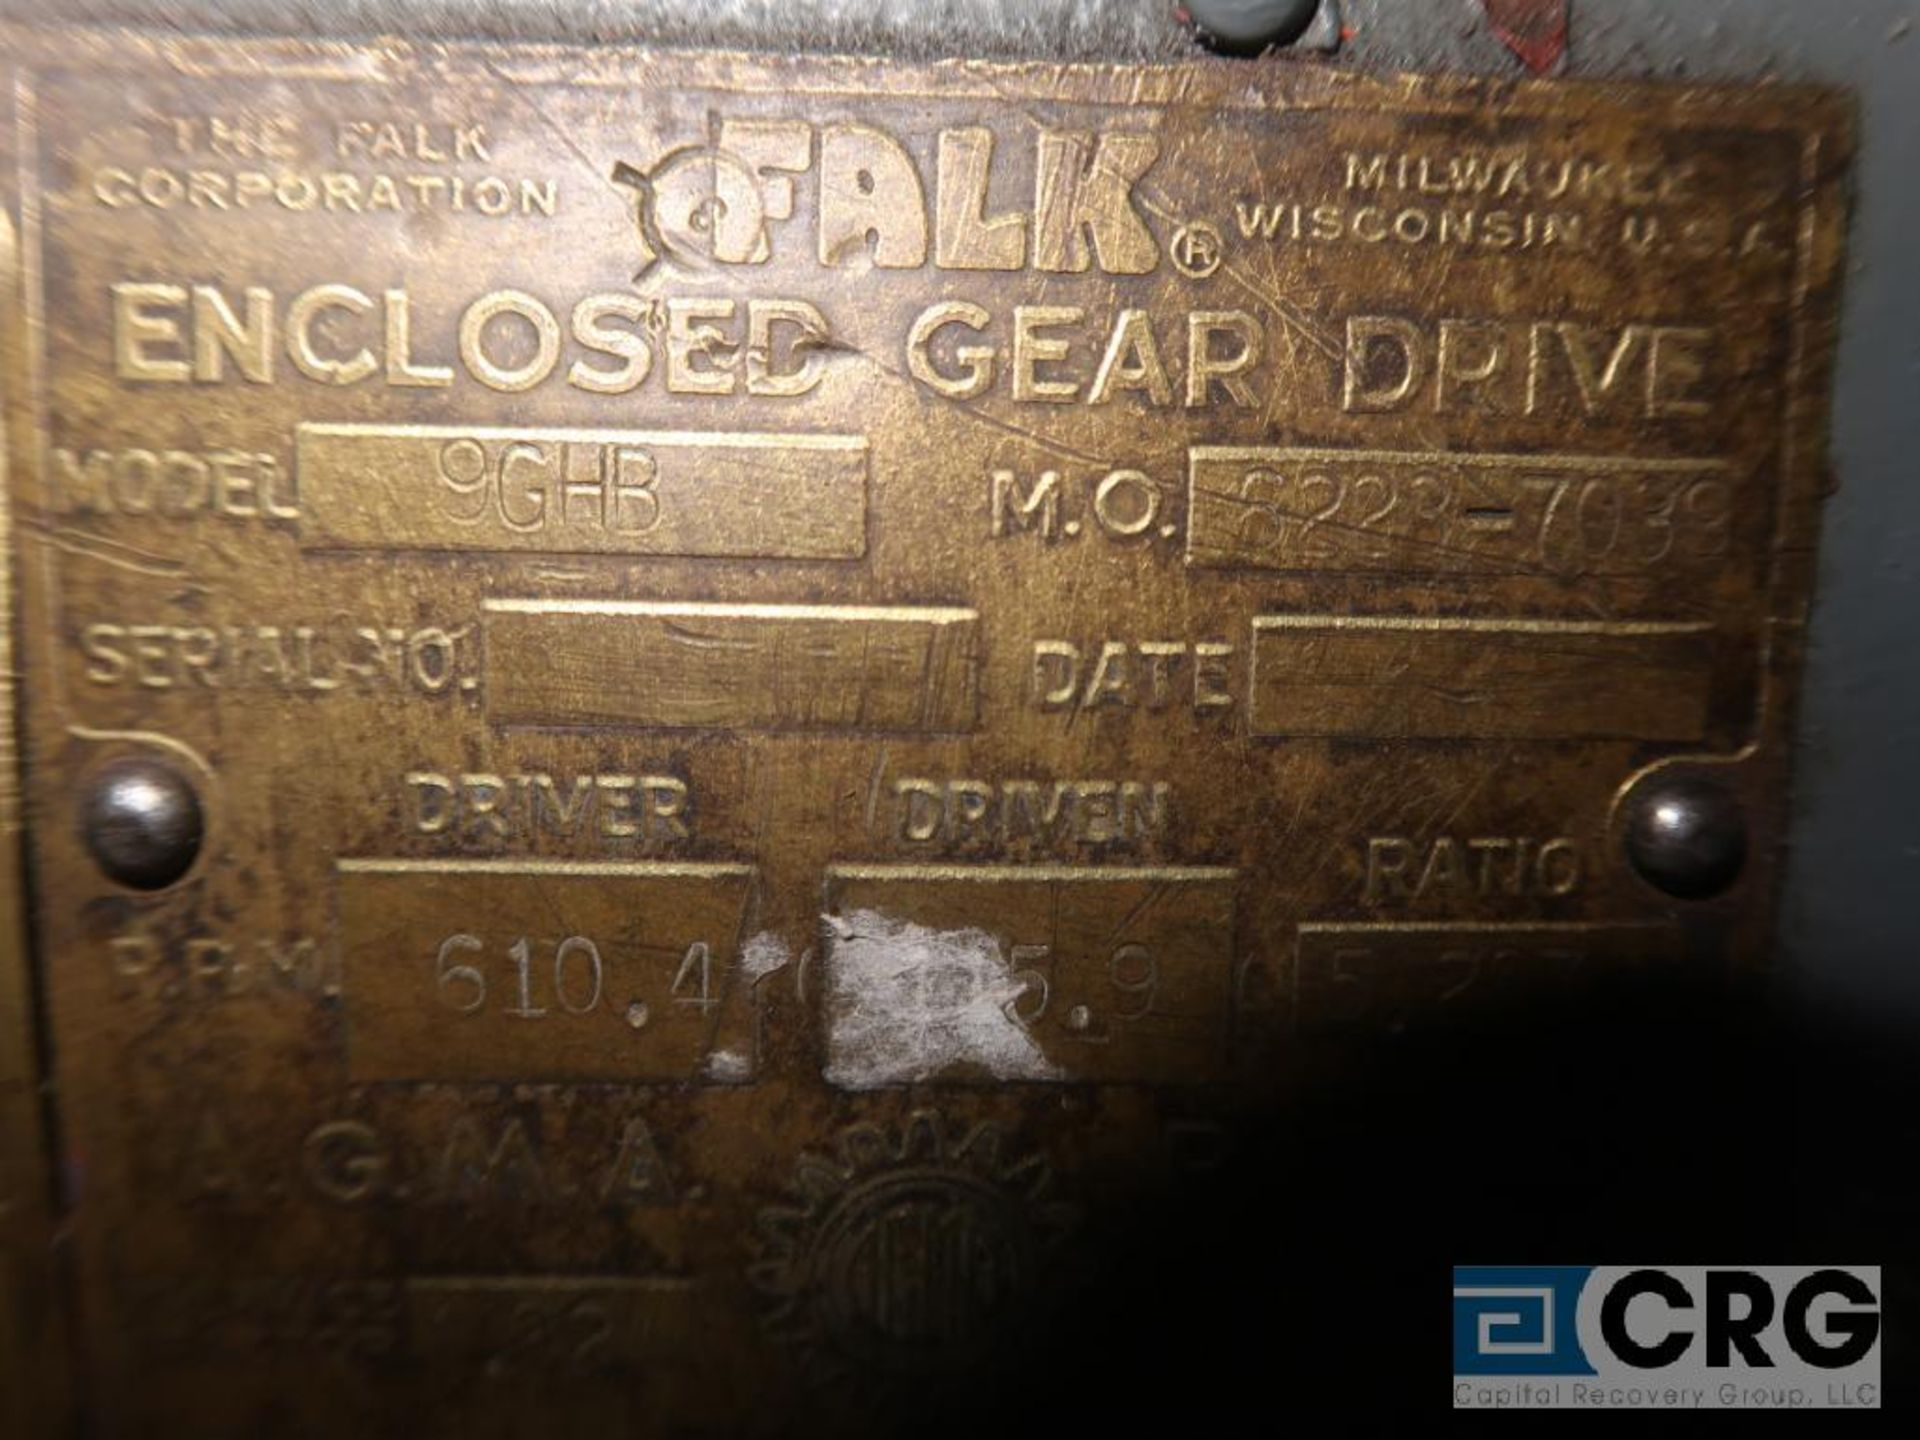 Falk 9GHR gear drive, ratio-5.267, RPM 610.4, s/n 62237039 (Next Bay Cage Area) - Image 3 of 3